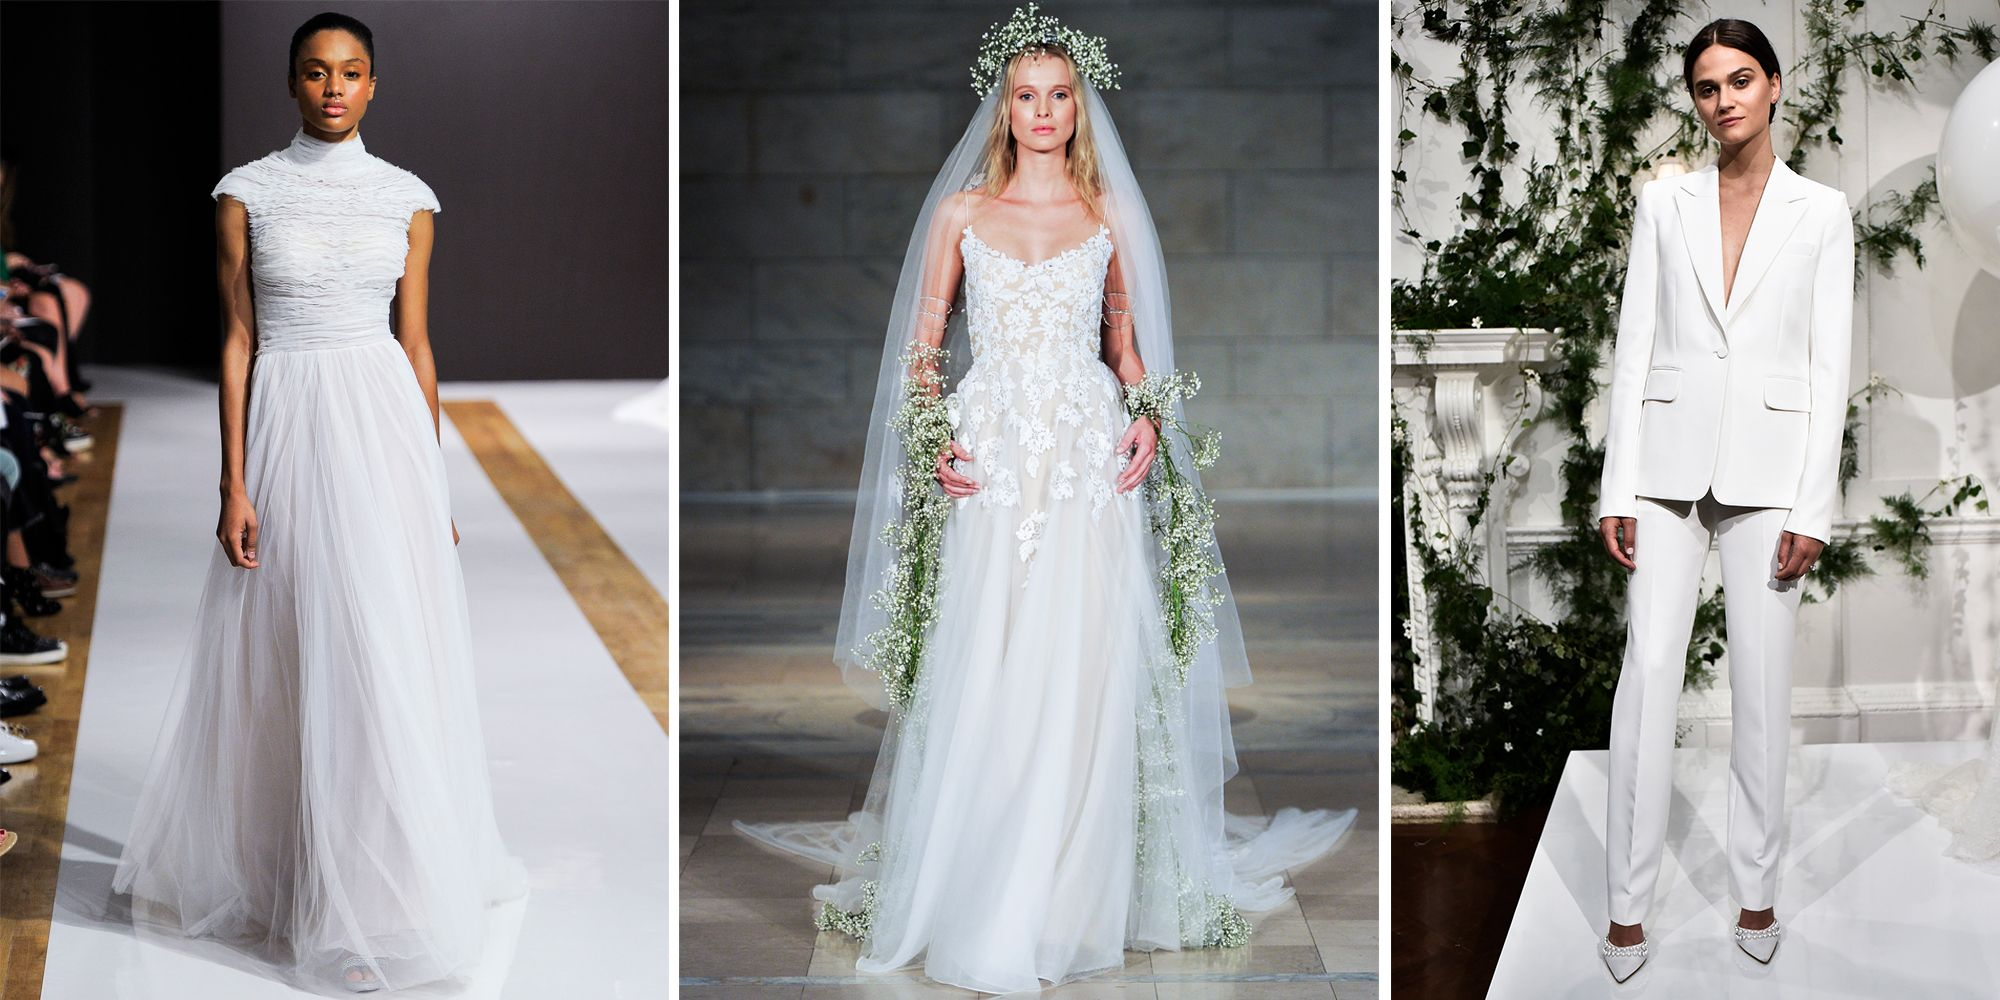 19 Dreamy Haute Couture Wedding Dresses Meghan Markle Could Wear On